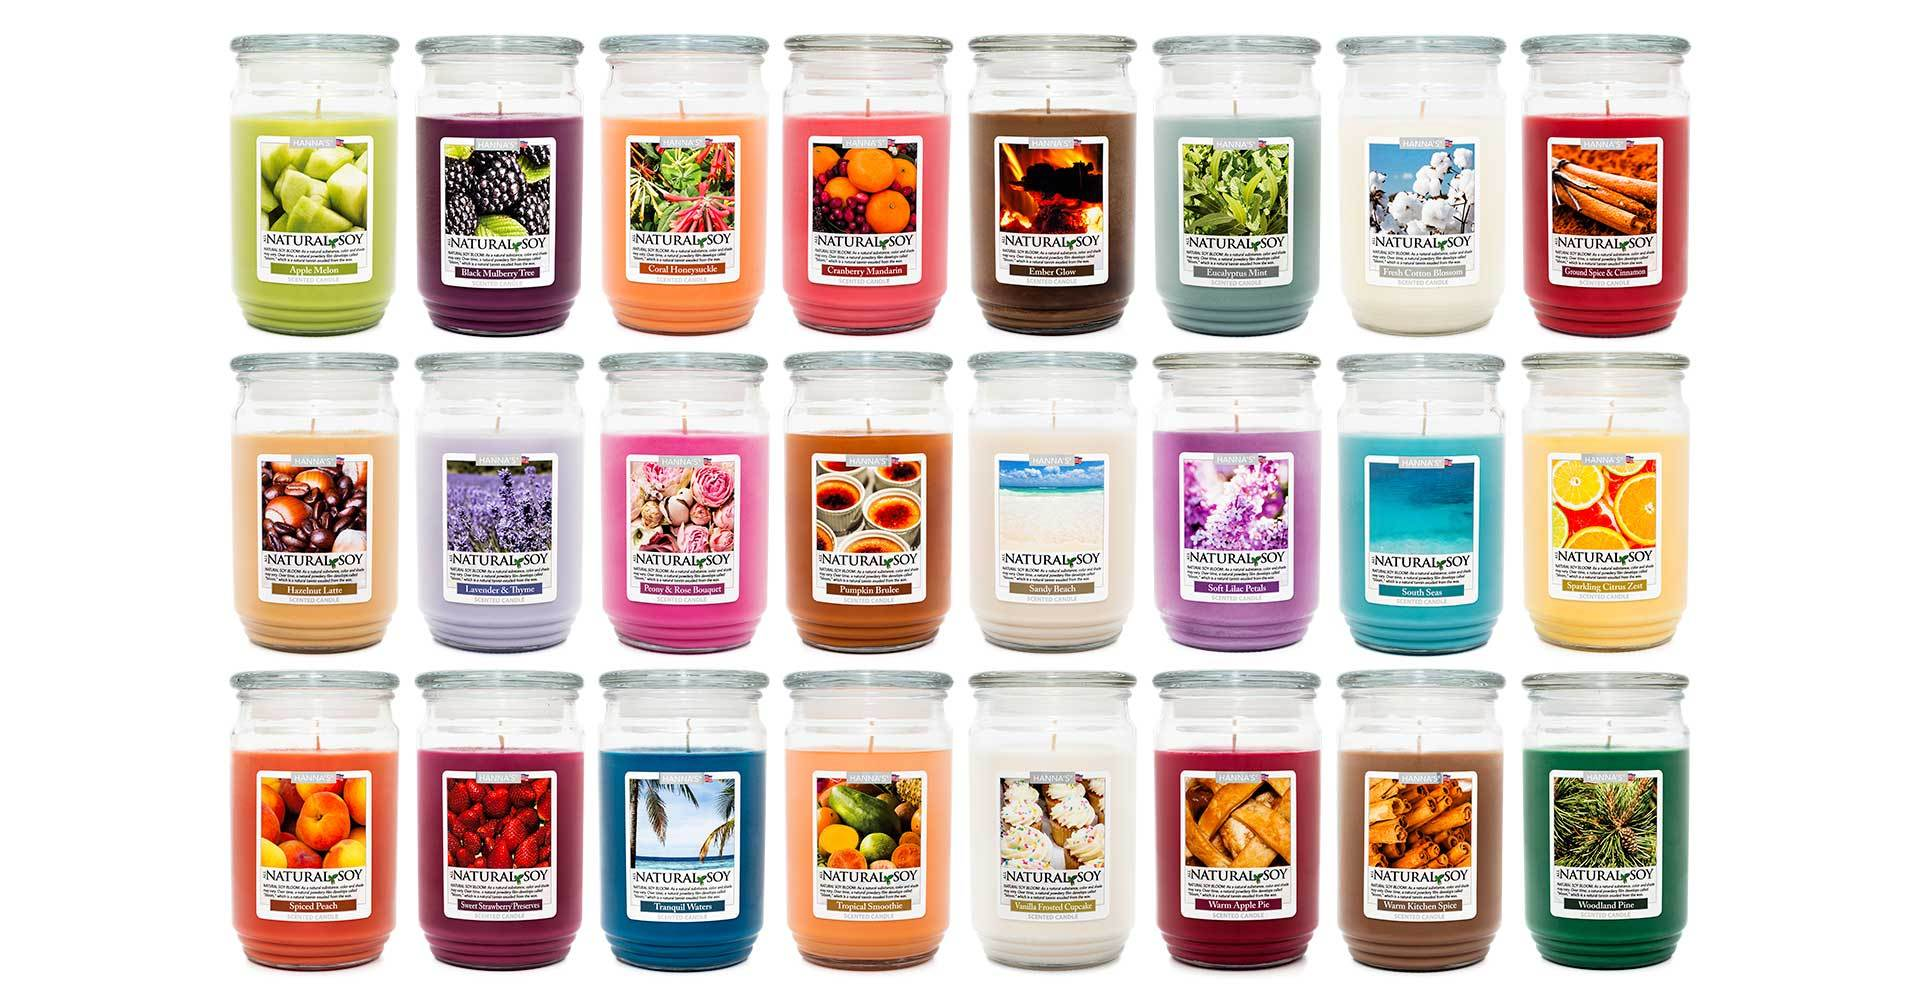 Natural Soy Warm Apple Pie Scented Soy Candle 100% Soy Candles Candlemart.com $ 11.99